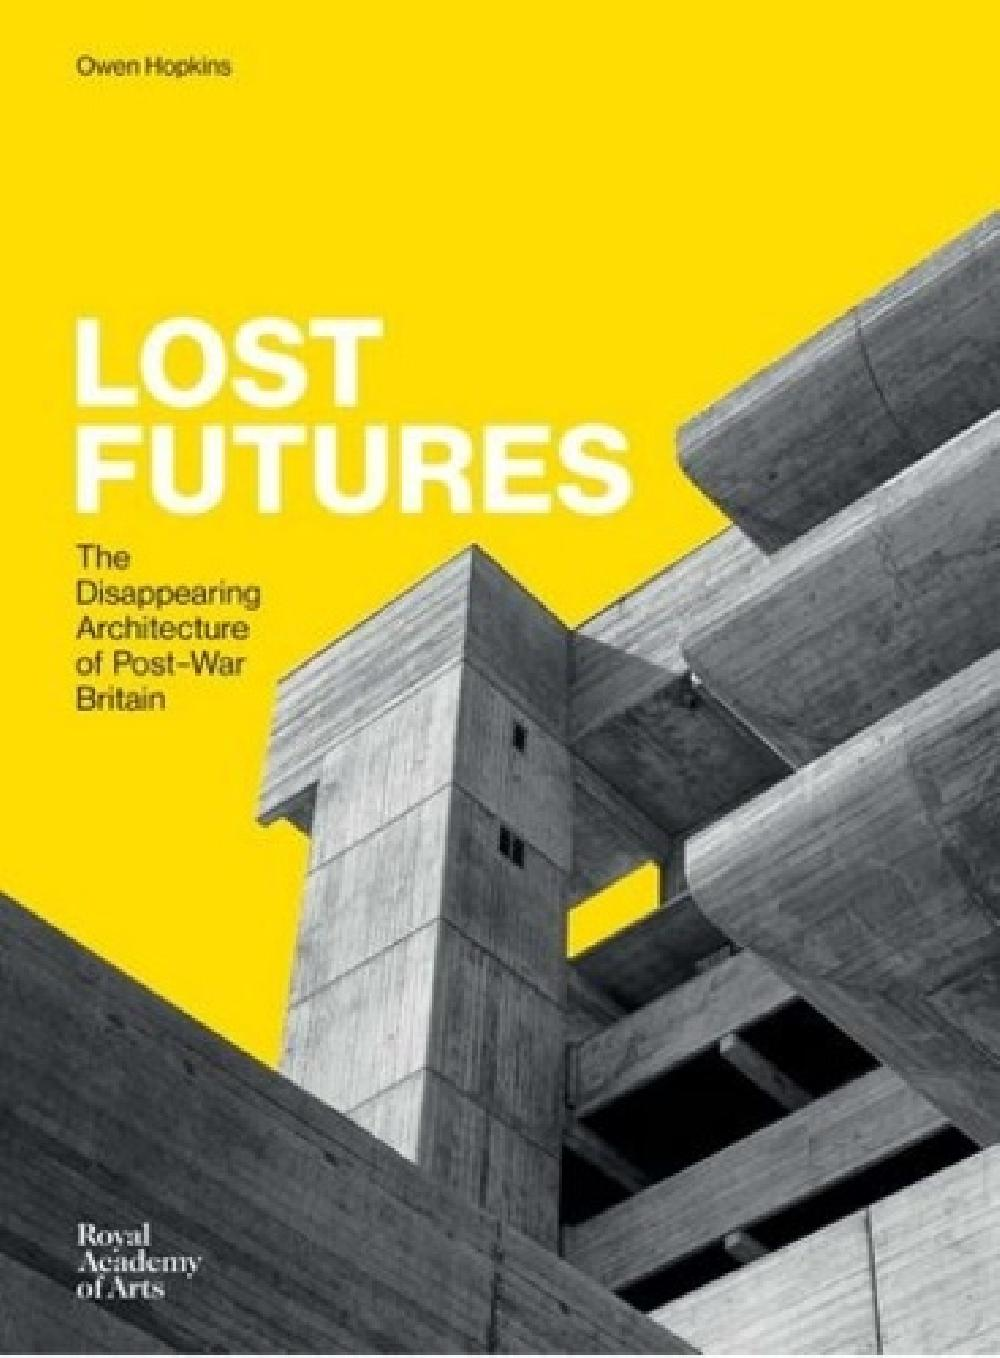 Lost Futures: The Disappearing Architecture of Post-War Britain